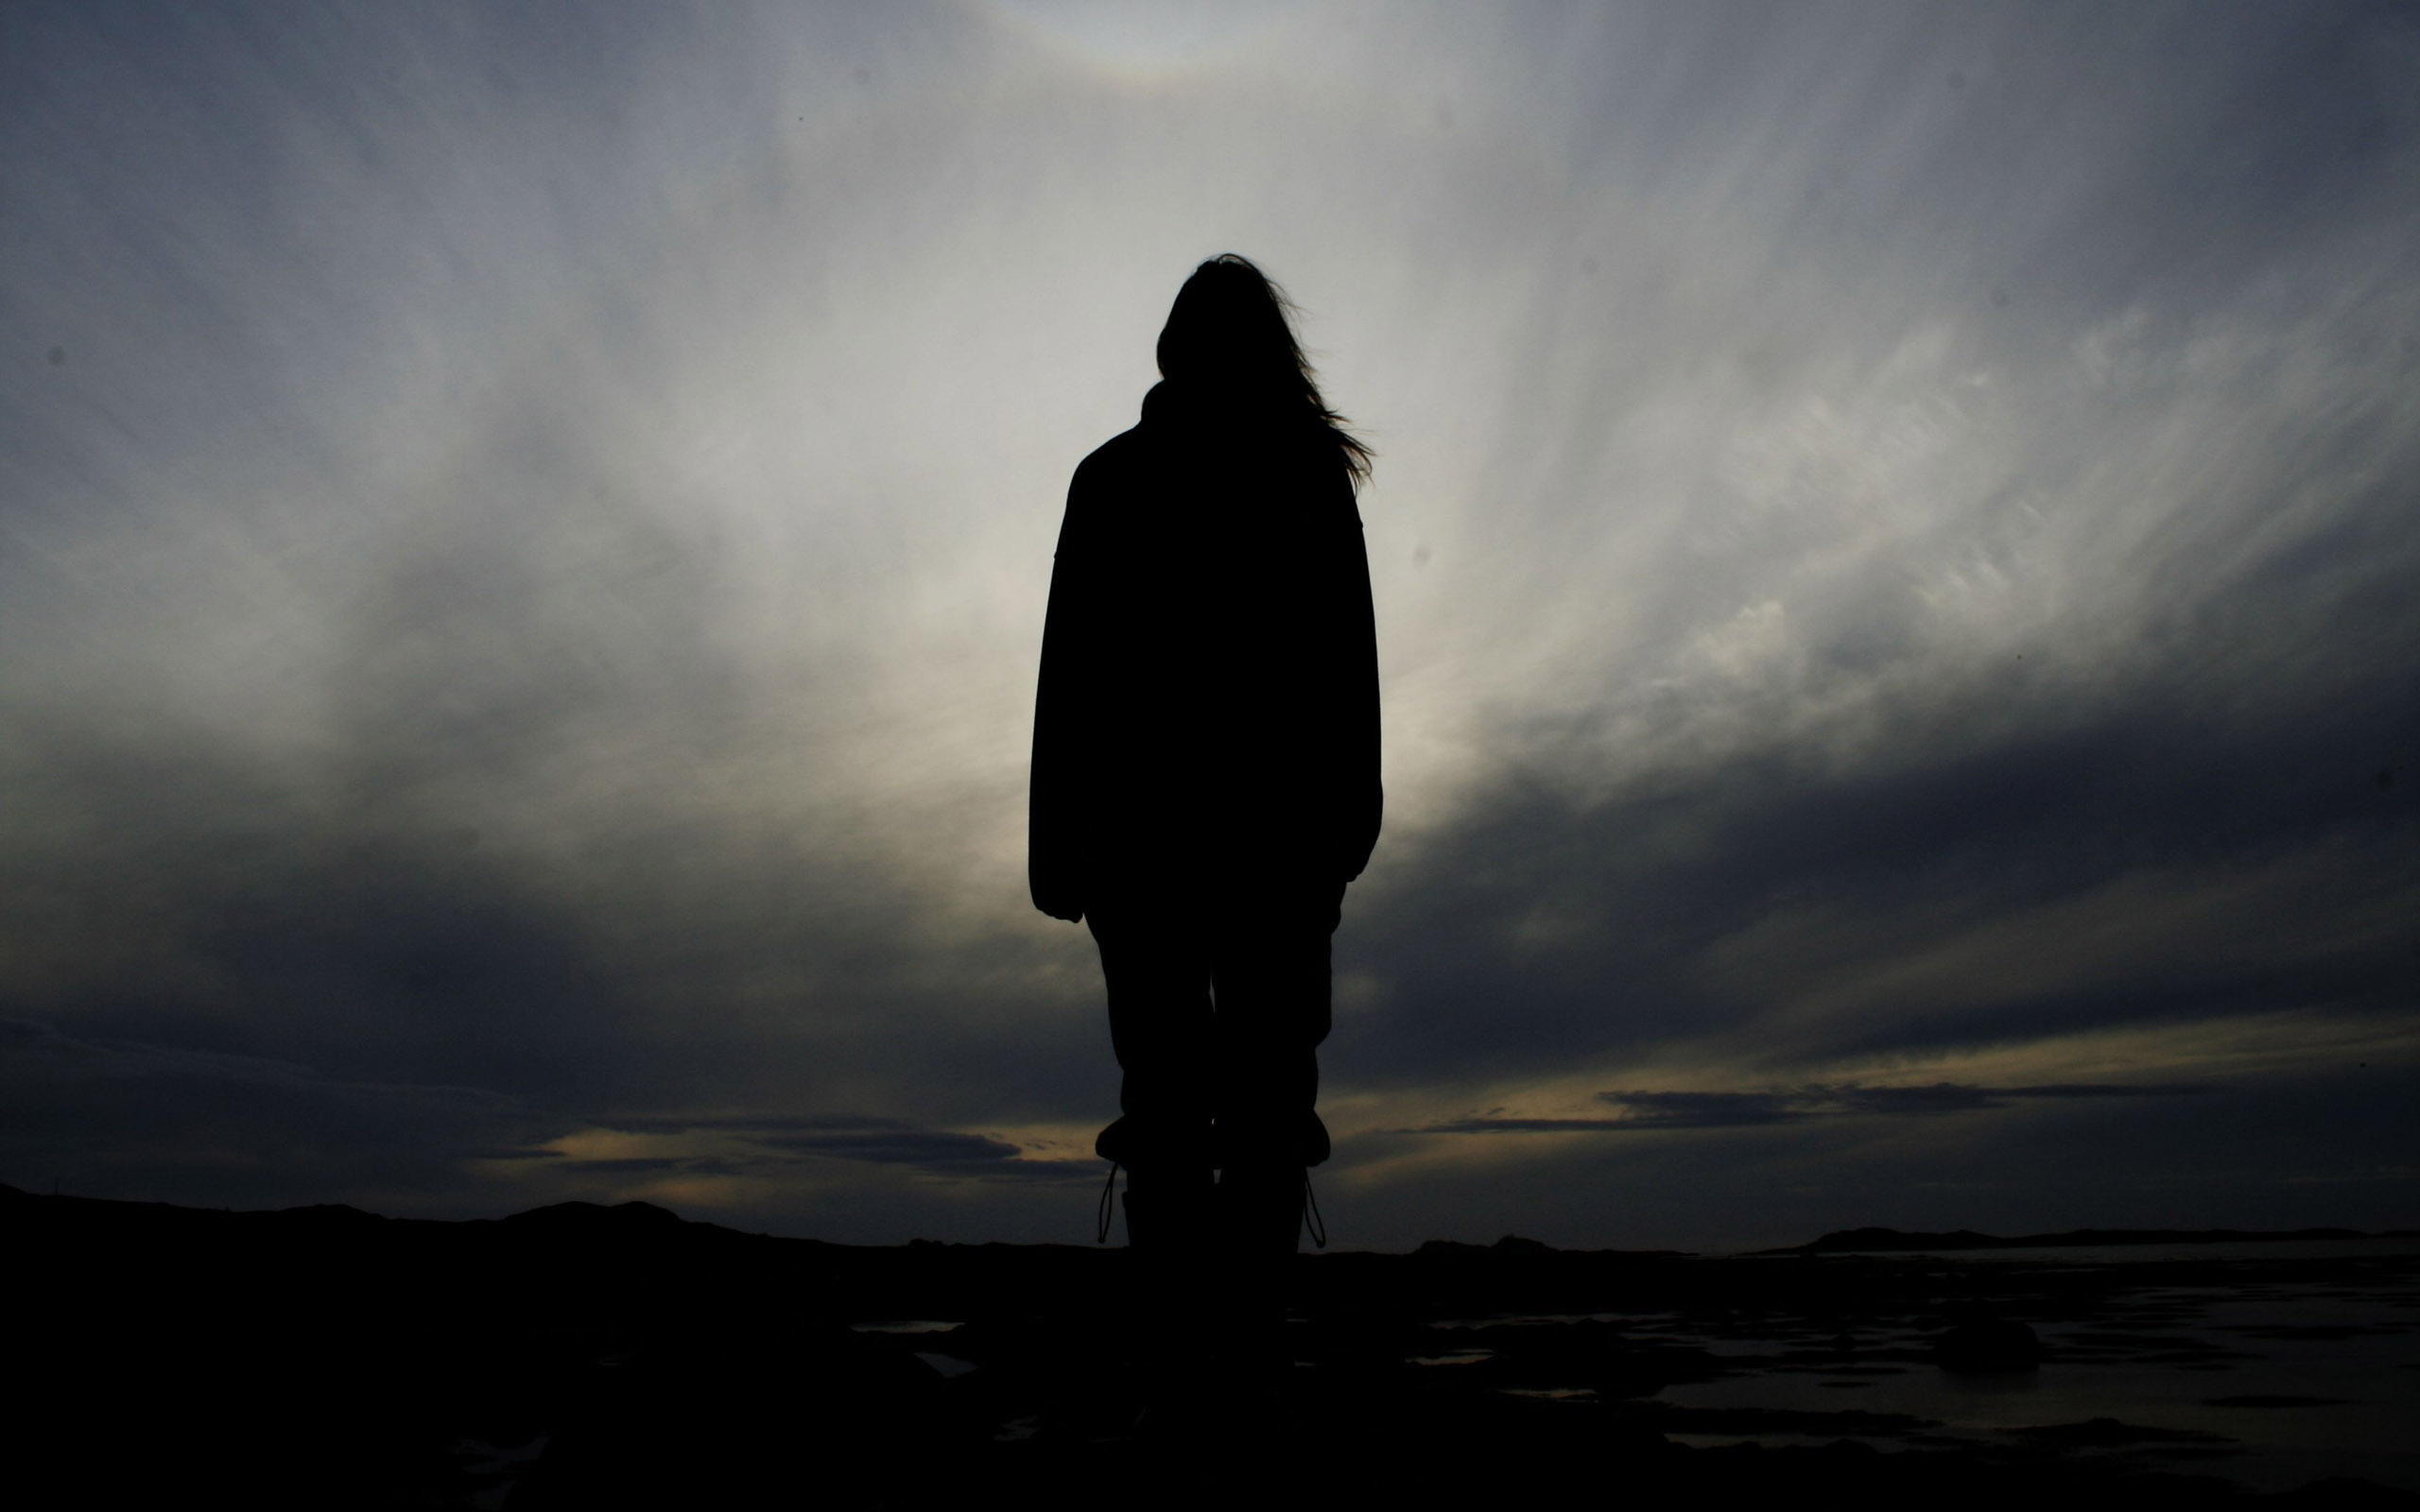 Woman's silhouette under the evening sky